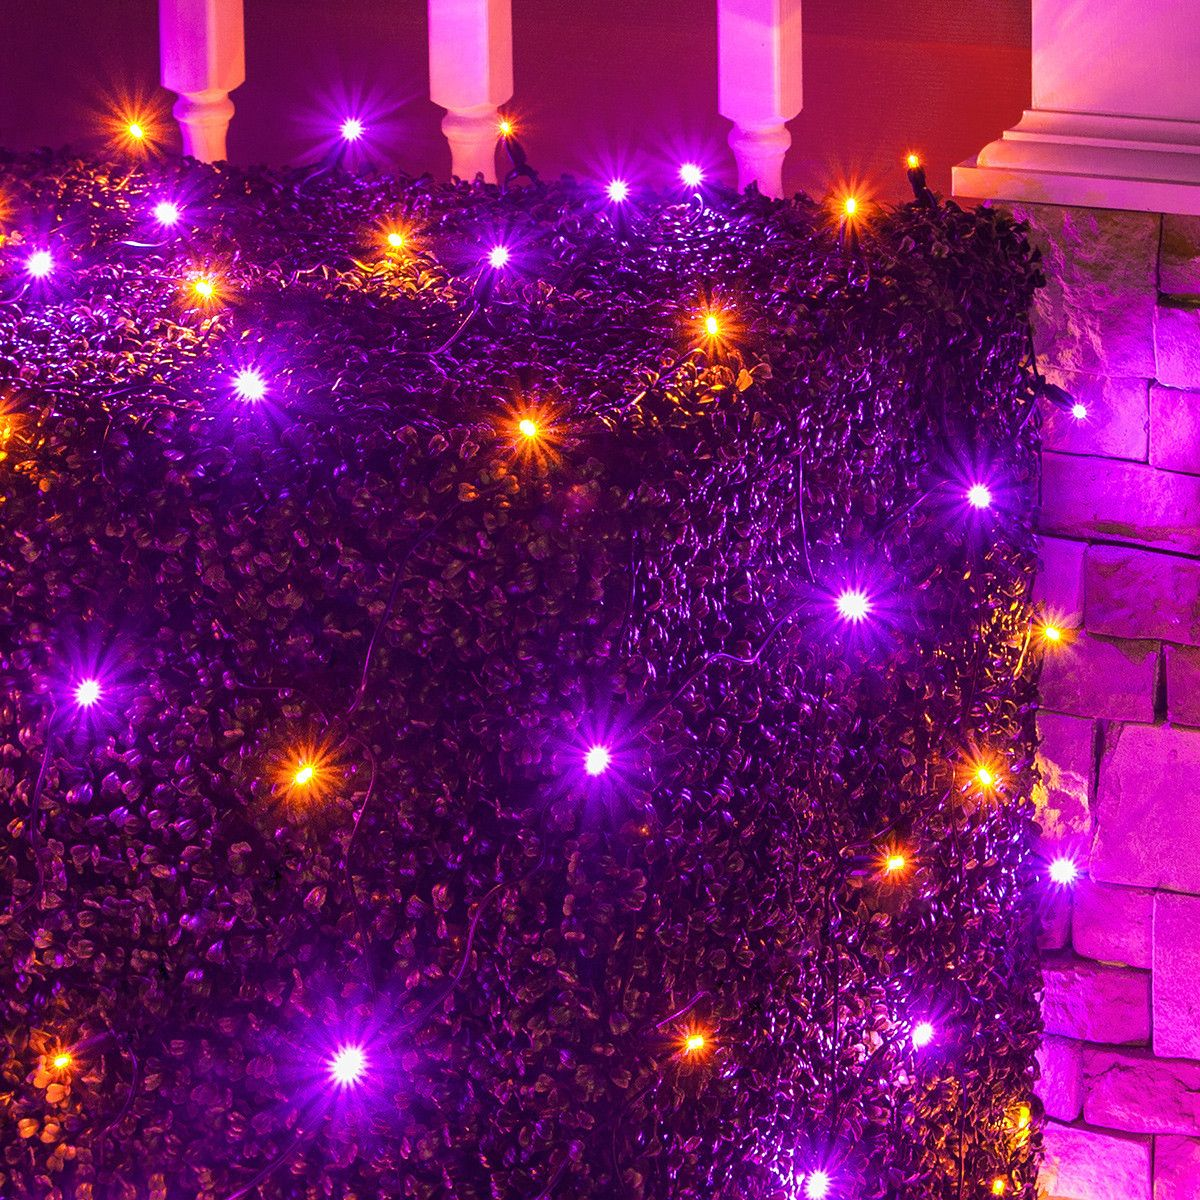 Led Halloween Lights 4 X 6 Halloween Led Net Lights 100 Purple Orange Lamps